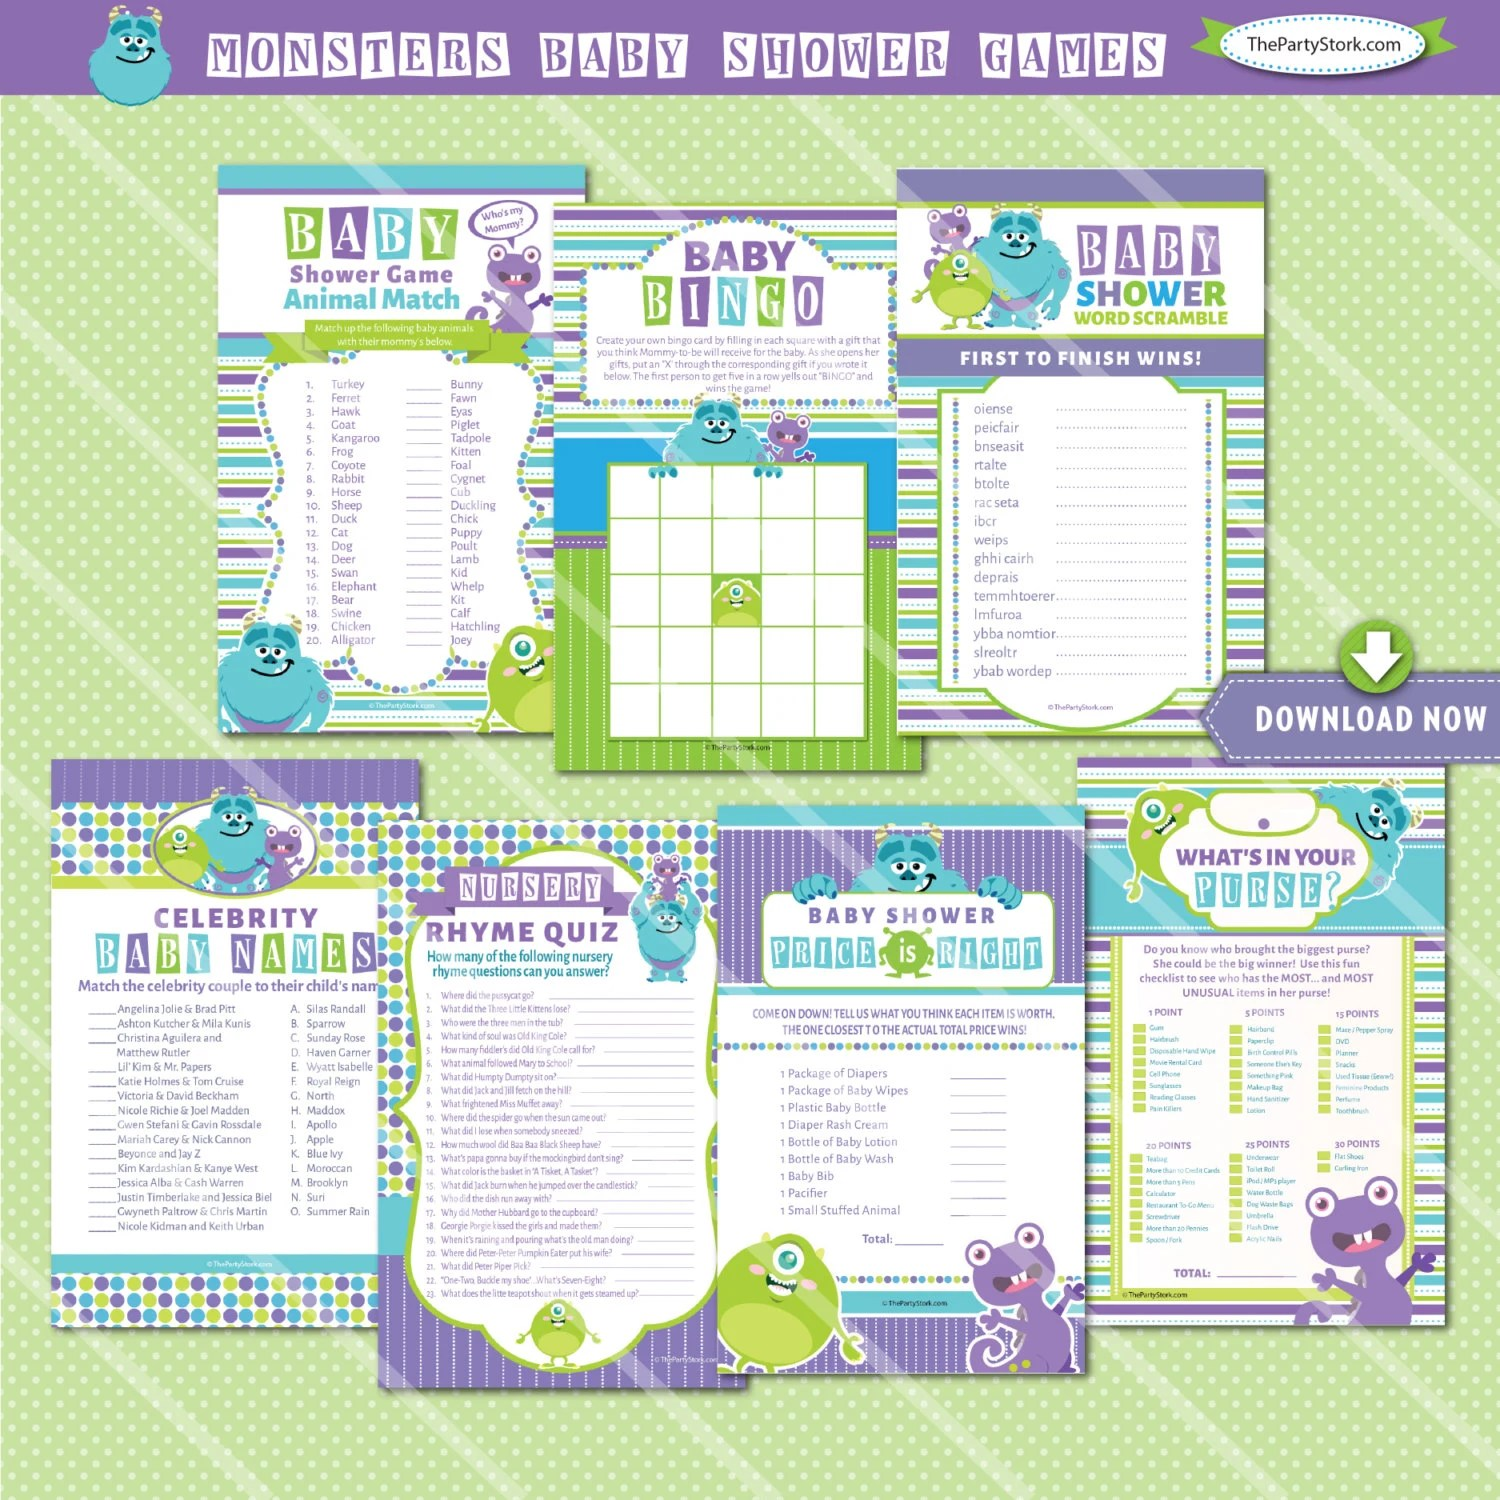 Monsters Inc Baby Shower Games Monsters Inc Baby Shower Game